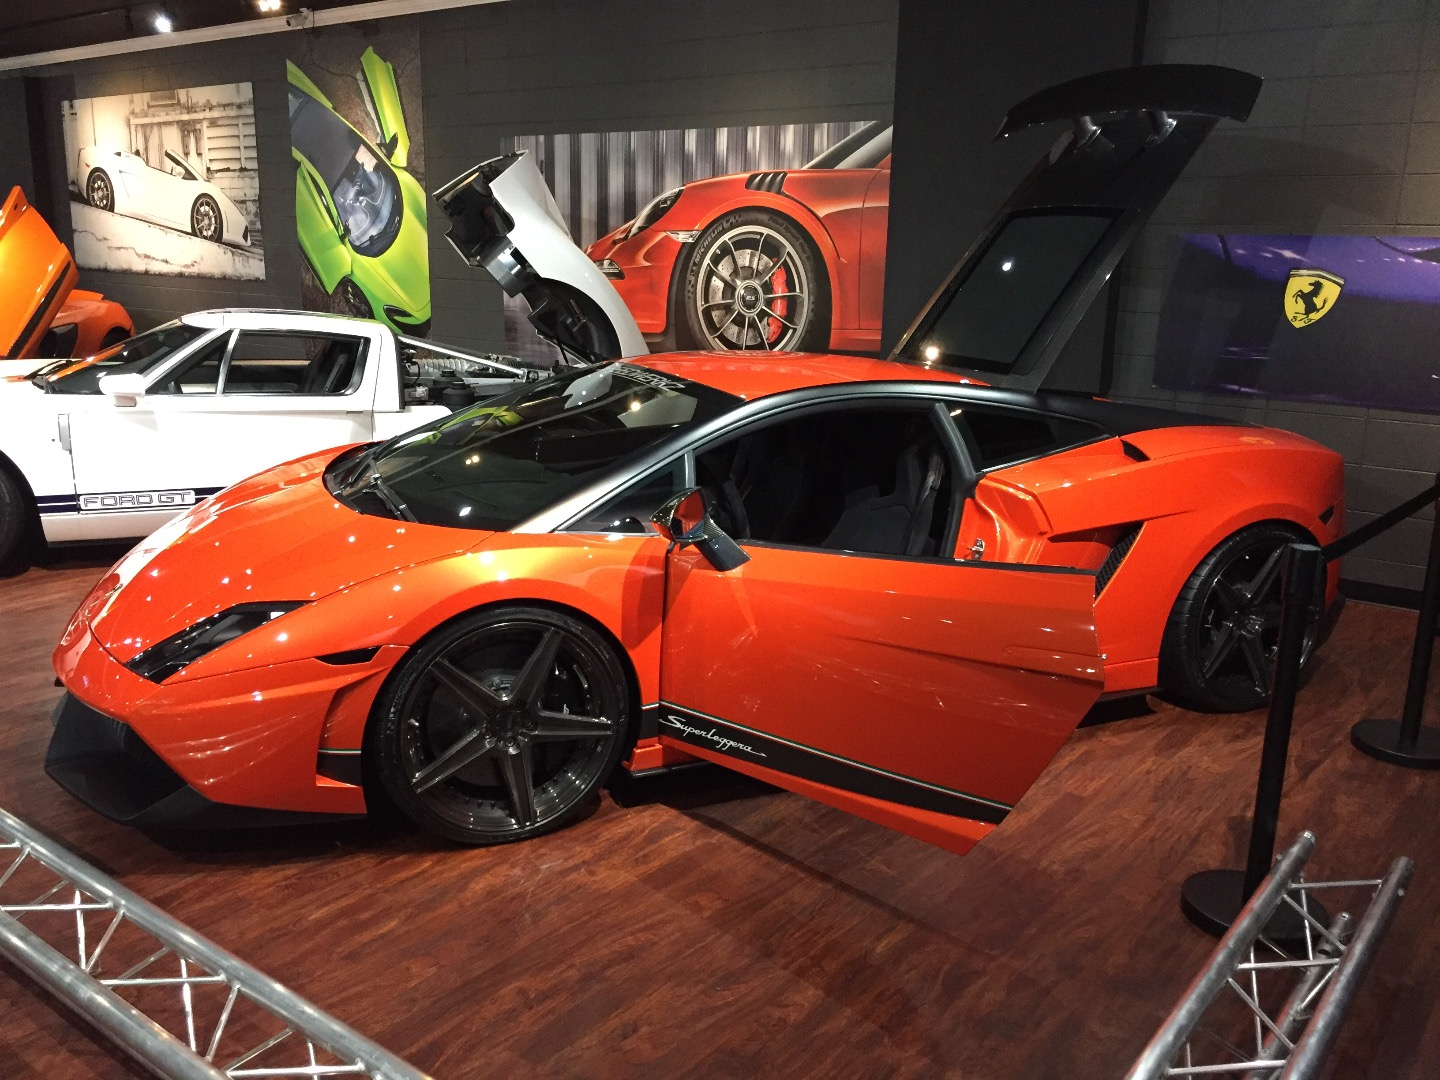 Speedwerkz Exotic Car Museum Pigeon Forge TN - Gatlinburg car show